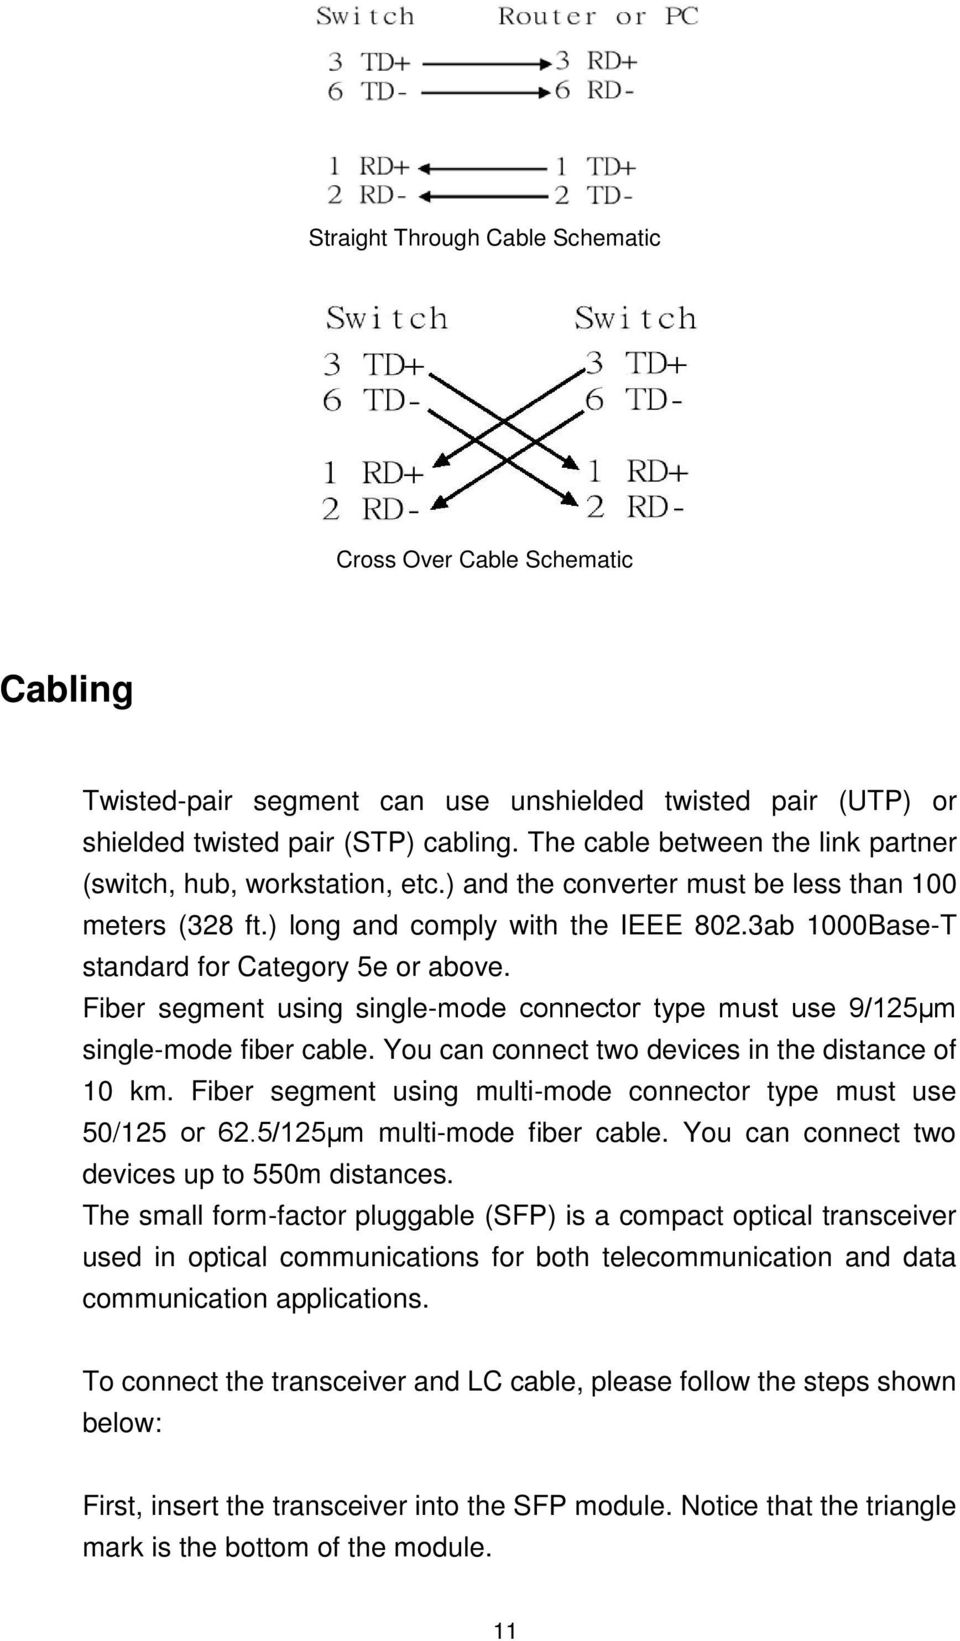 3ab 1000Base-T standard for Category 5e or above. Fiber segment using single-mode connector type must use 9/125μm single-mode fiber cable. You can connect two devices in the distance of 10 km.